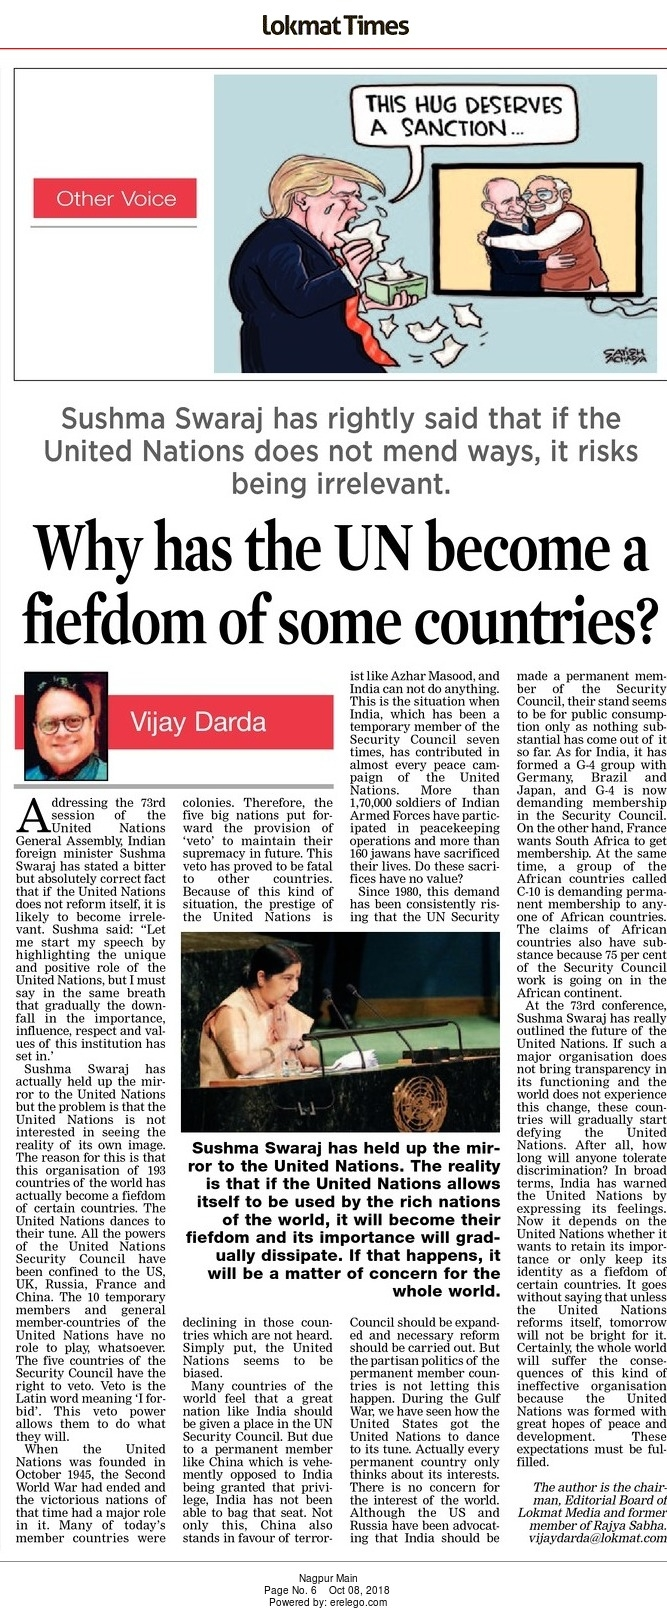 Why has the UN become a fiefdom of some countries?